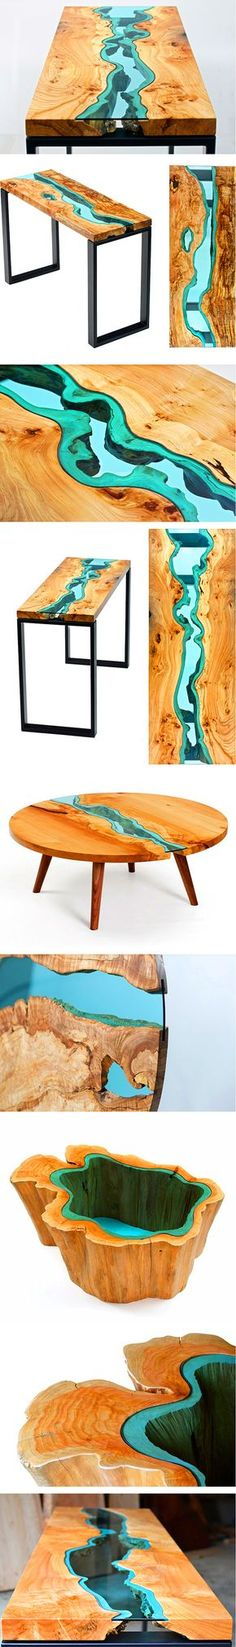 """Greg Klassen is a furniture maker in the Pacific Northwest who finds inspiration in its landscape and translates that into his work. His River Collection is a series of intricately designed and handcrafted tables that feature embedded, blueish-green glass """"rivers"""" running throughout each piece. The naturally uneven edges of the wood and their vivid grains provide the perfect """"shore"""" to mimic bodies of water."""